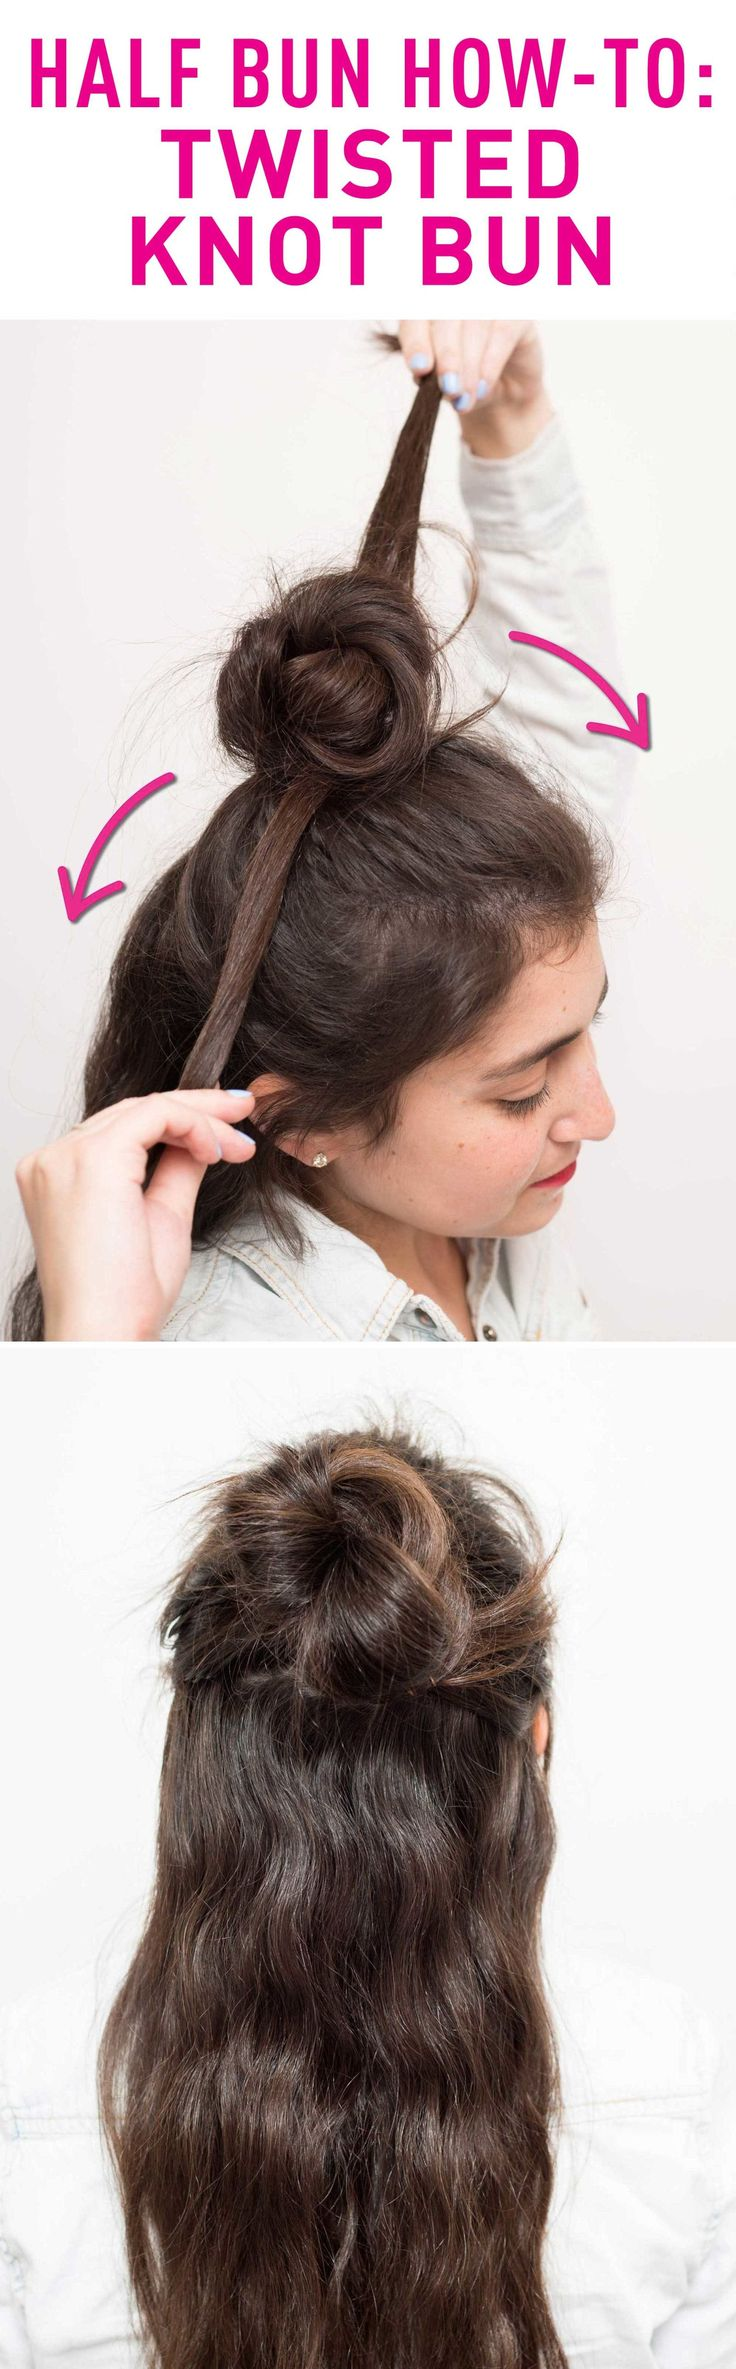 For a fuller half bun, try twisting your hair in opposite directions and pinning them in place.